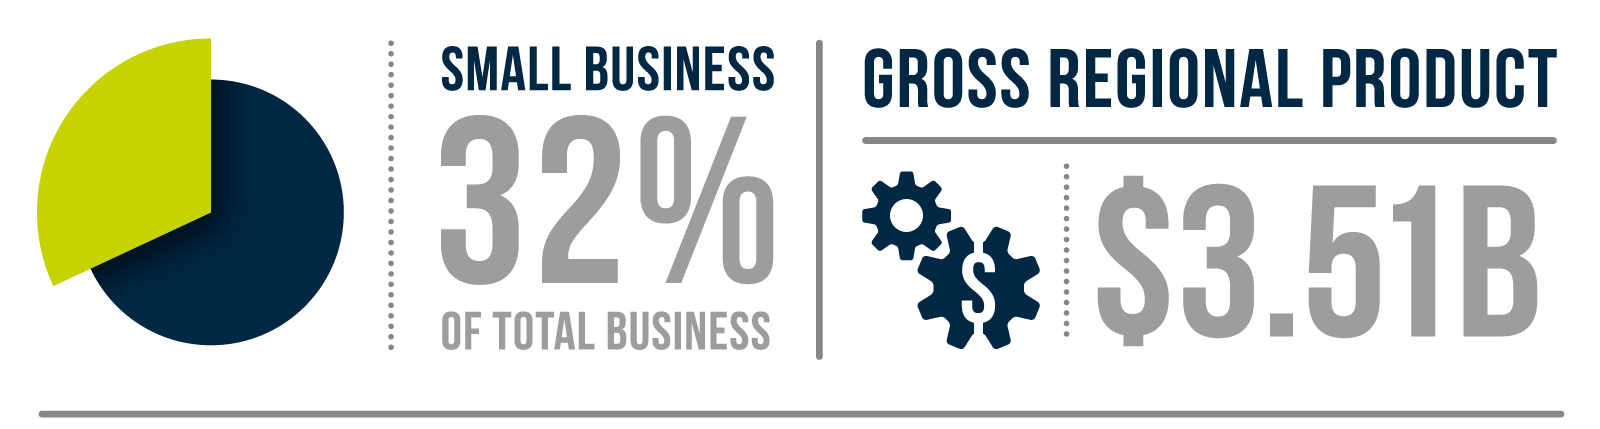 Gross Regional Product $3.51b. Small business equate to 32.2% of the business sector.